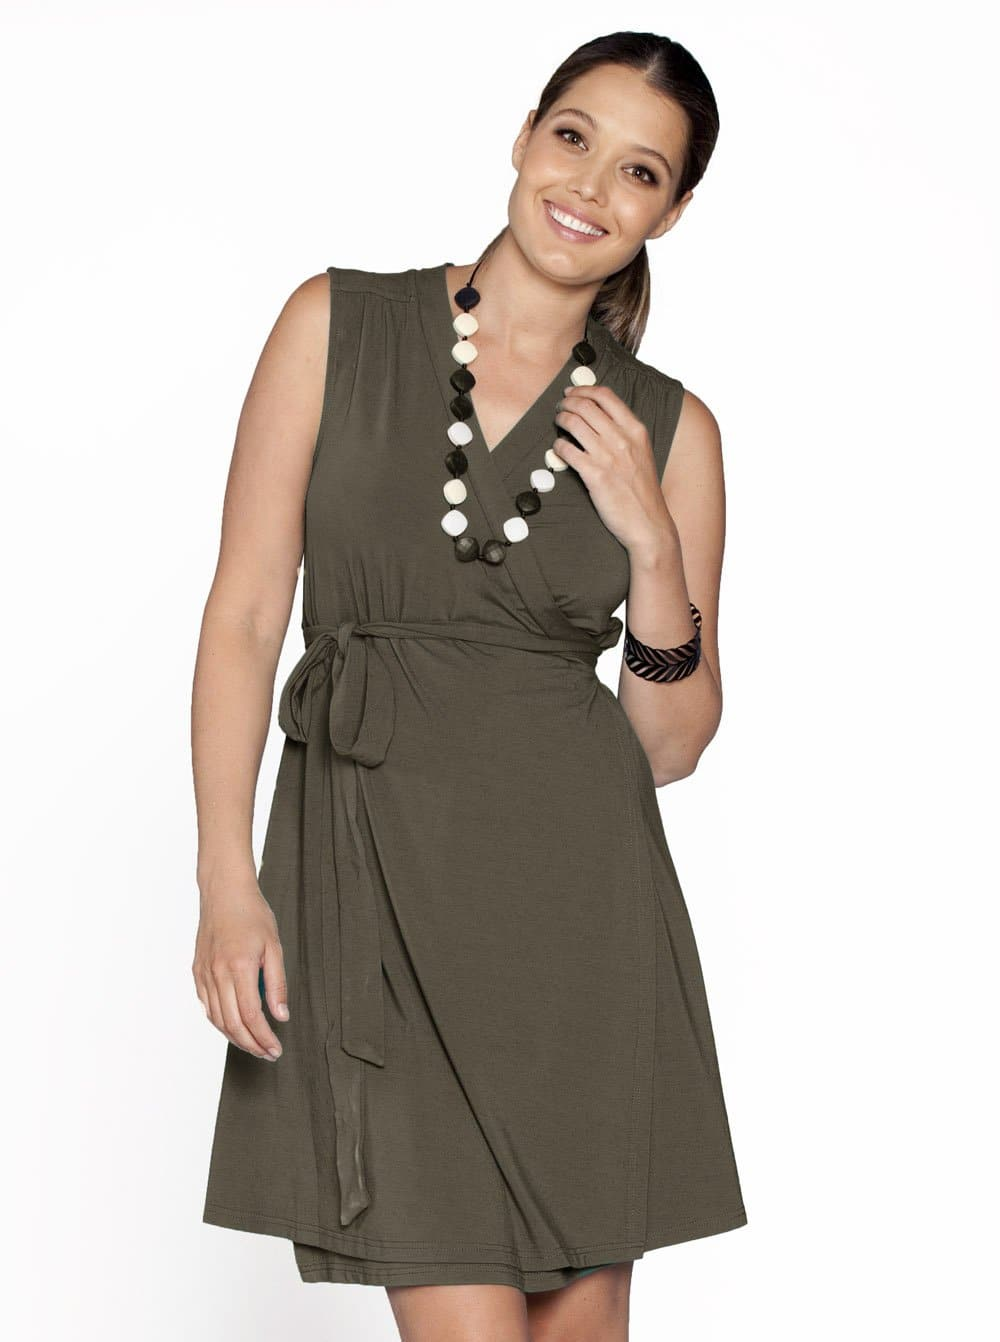 Maternity Classic Wrap Breastfeeding Dress in Khaki - Angel Maternity - Maternity clothes - shop online